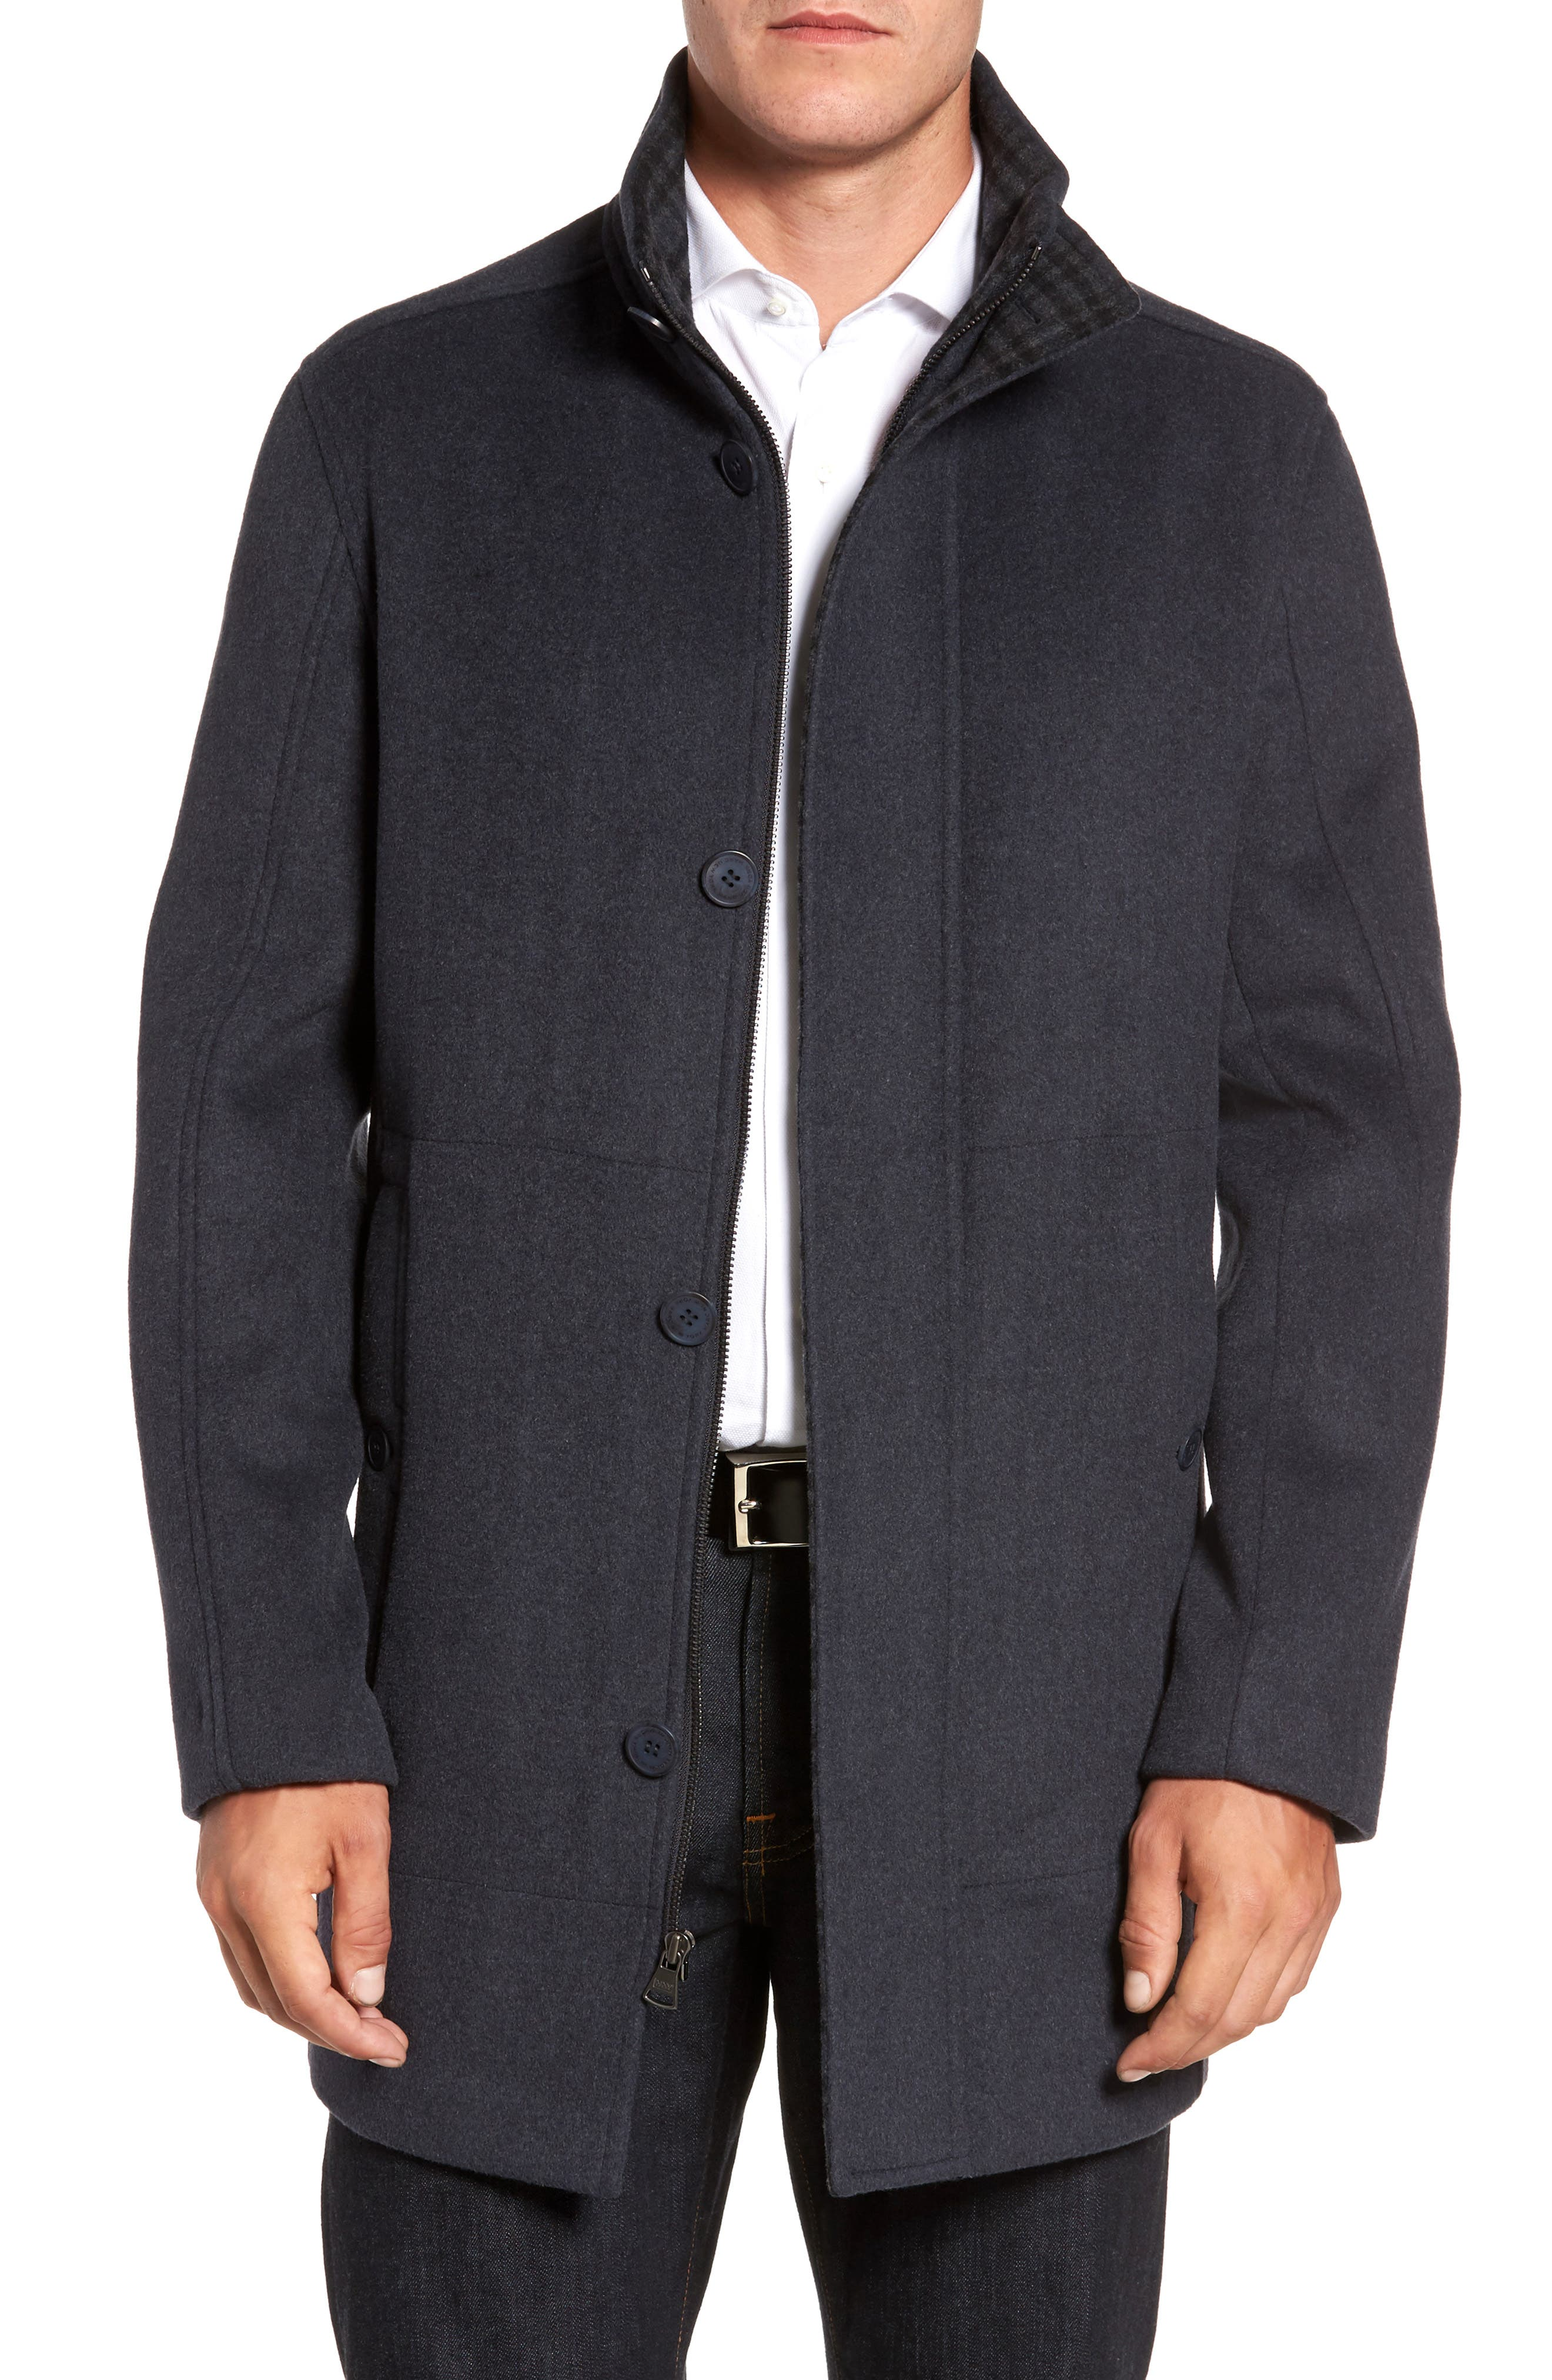 Alternate Image 1 Selected - Marc New York Double Face Wool Blend Car Coat